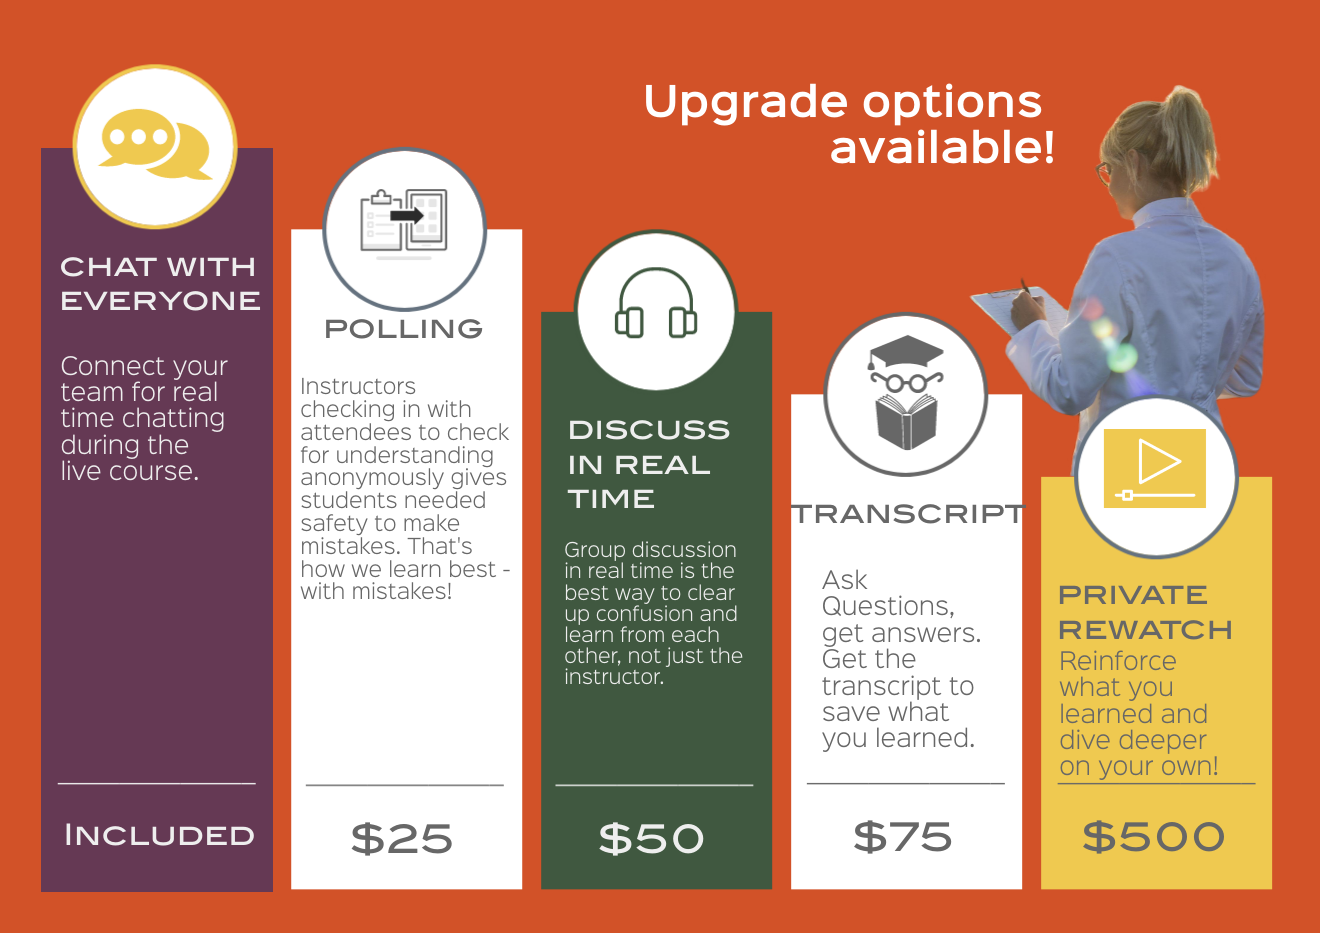 INSTRUCTOR LED TOPICS & UPGRADES AVAILABLE